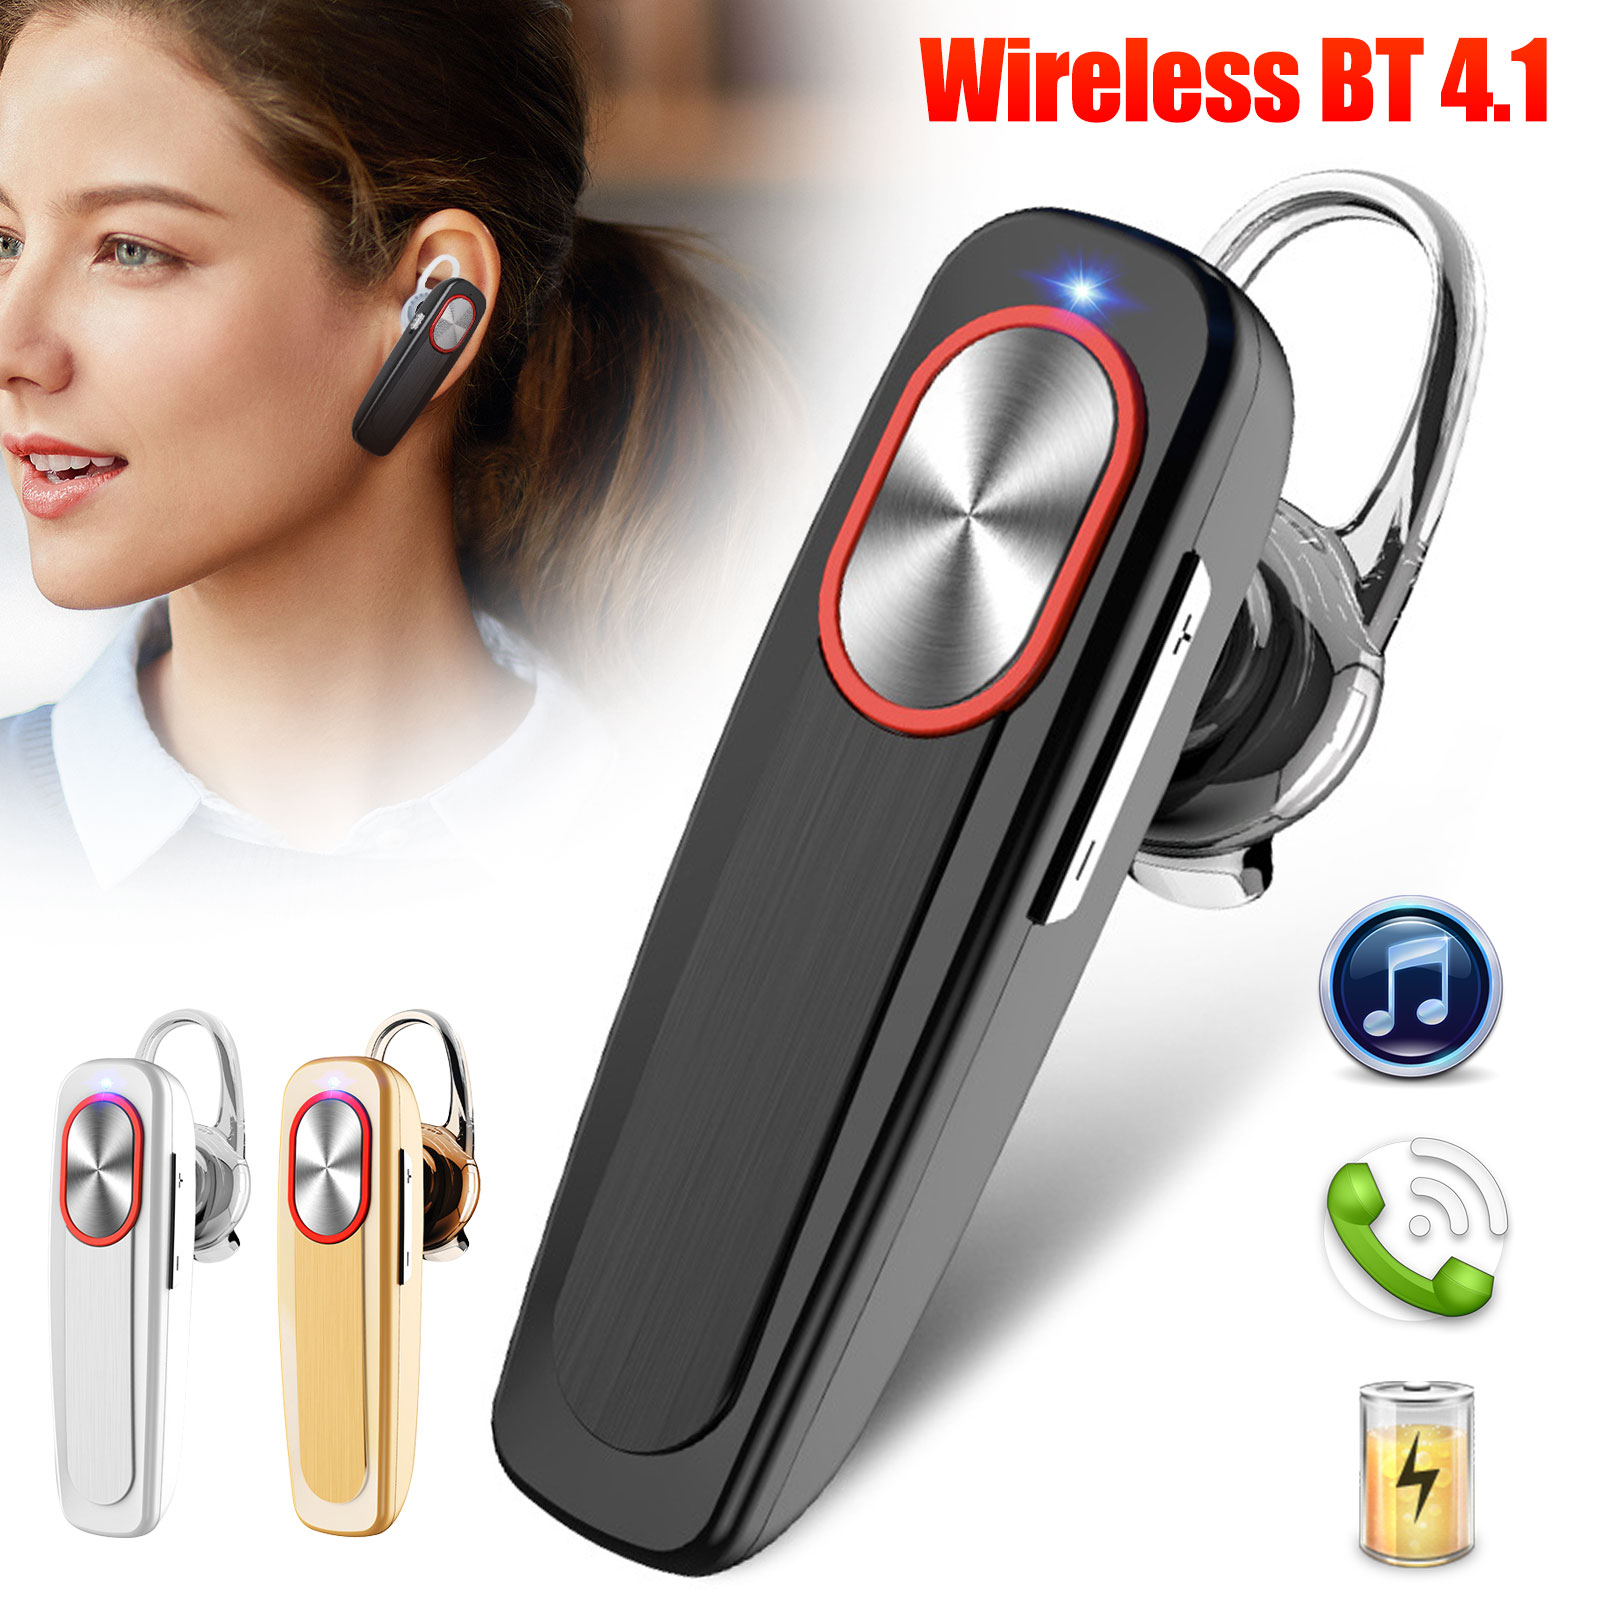 Gembird Bhp 003s Bluetooth Stereo Headset Silver For Sale Online Ebay